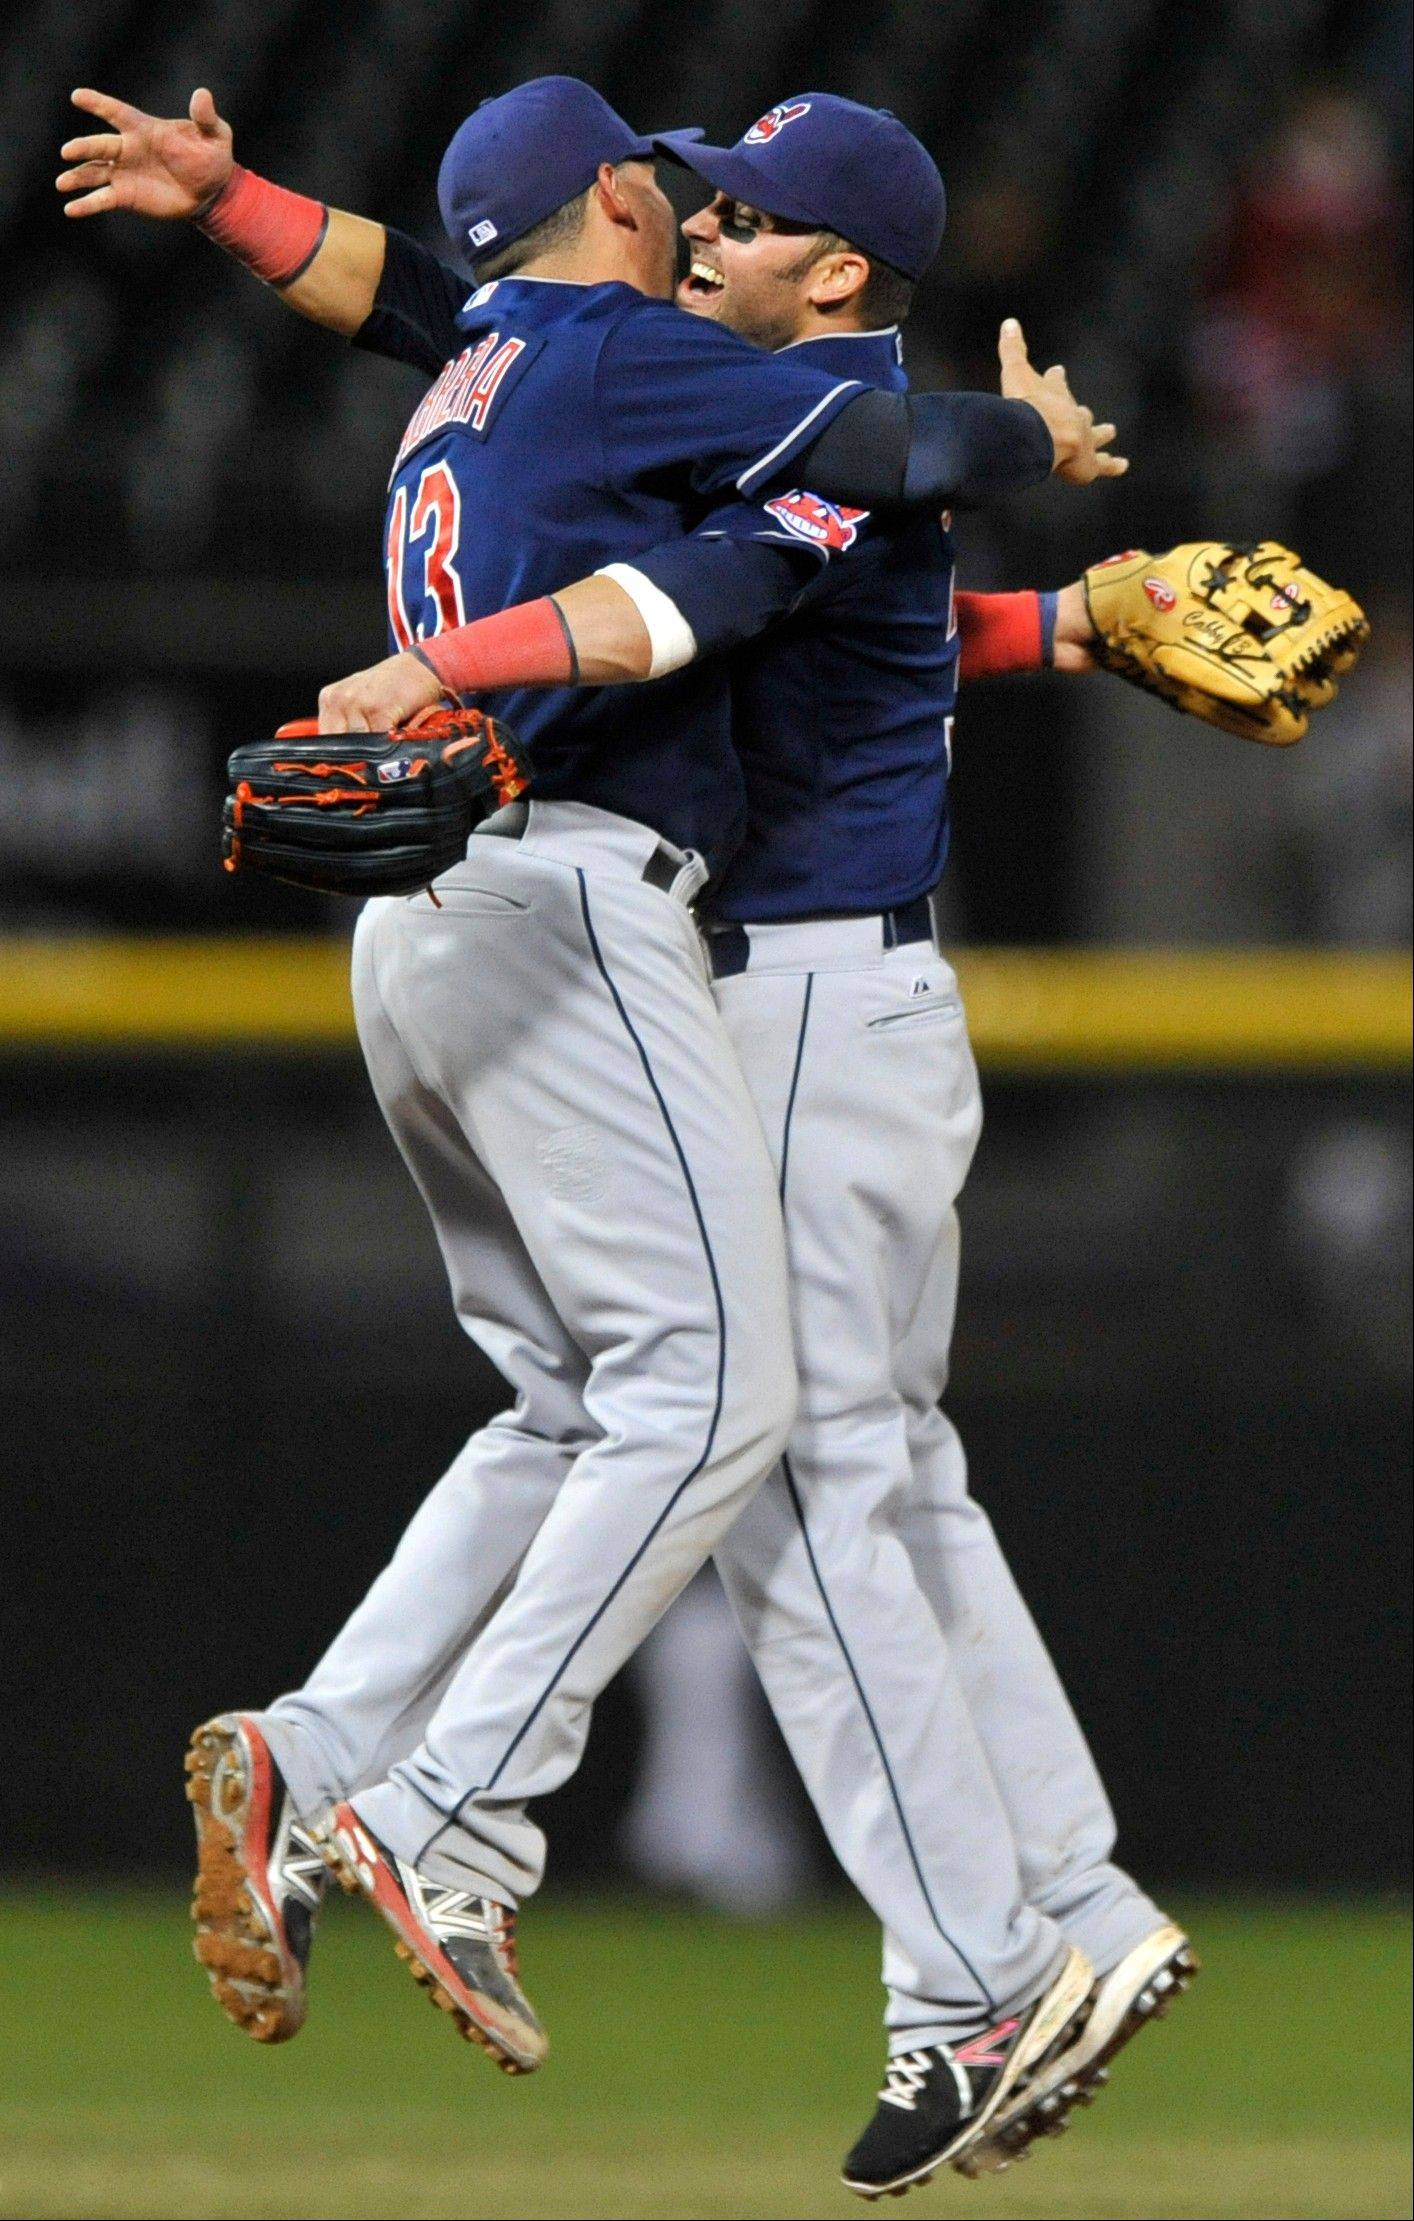 Cleveland�s Nick Swisher, right, and Asdrubal Cabrera celebrate after defeating the Chicago White Sox 9-8 in the second game of a doubleheader in Chicago.